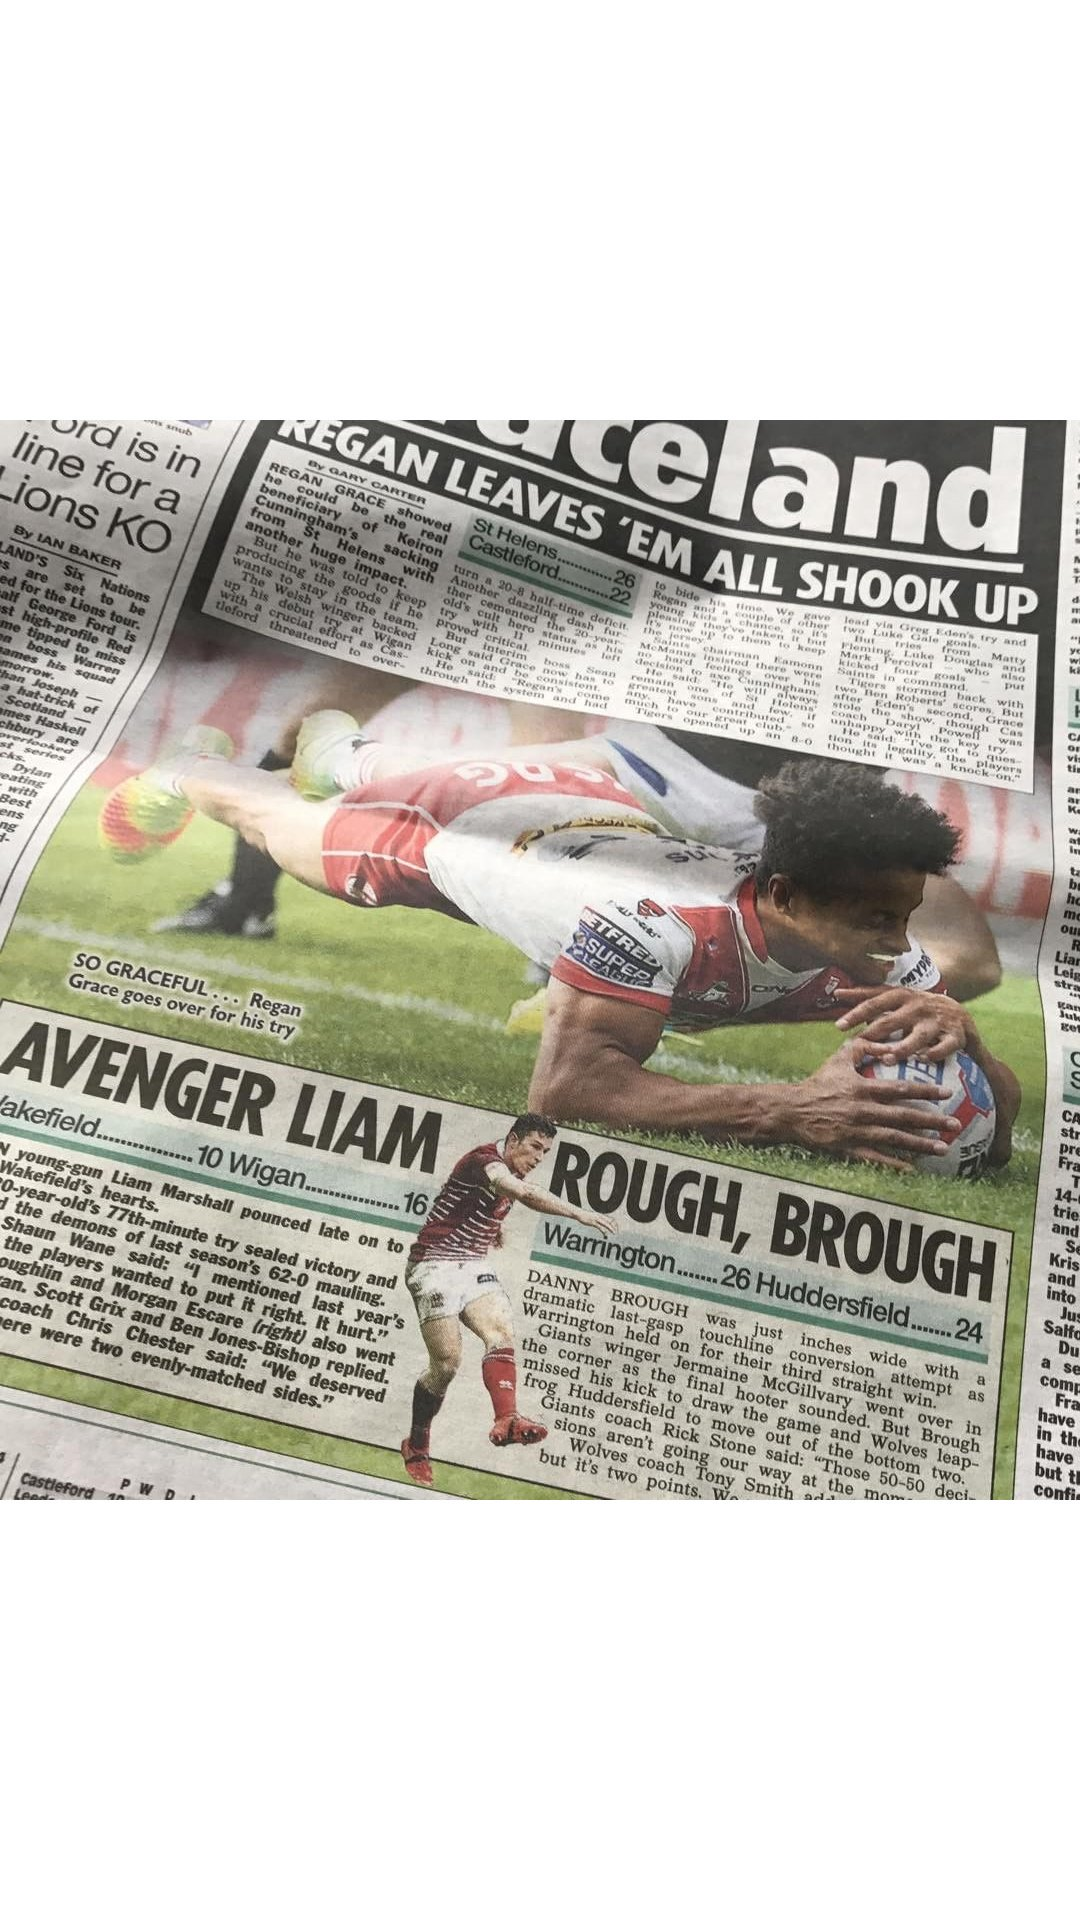 So proud of my brother @ReganGrace5  someone just sent me this from the sun newspaper . Amazing https://t.co/cM8sQNTS6Q